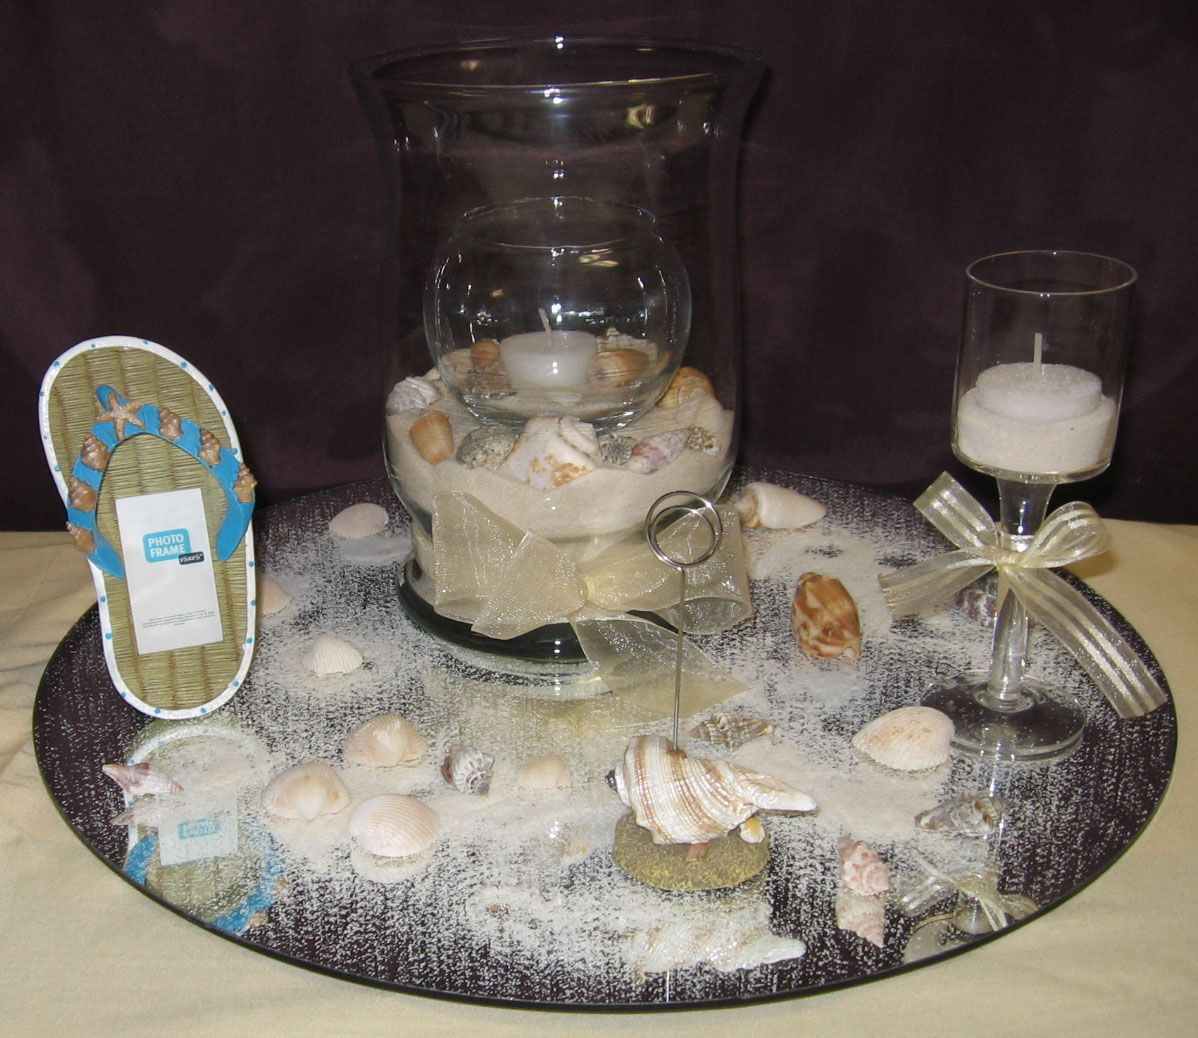 Beach Wedding Centerpieces Ideas: Beach Wedding Ideas - Bing Images